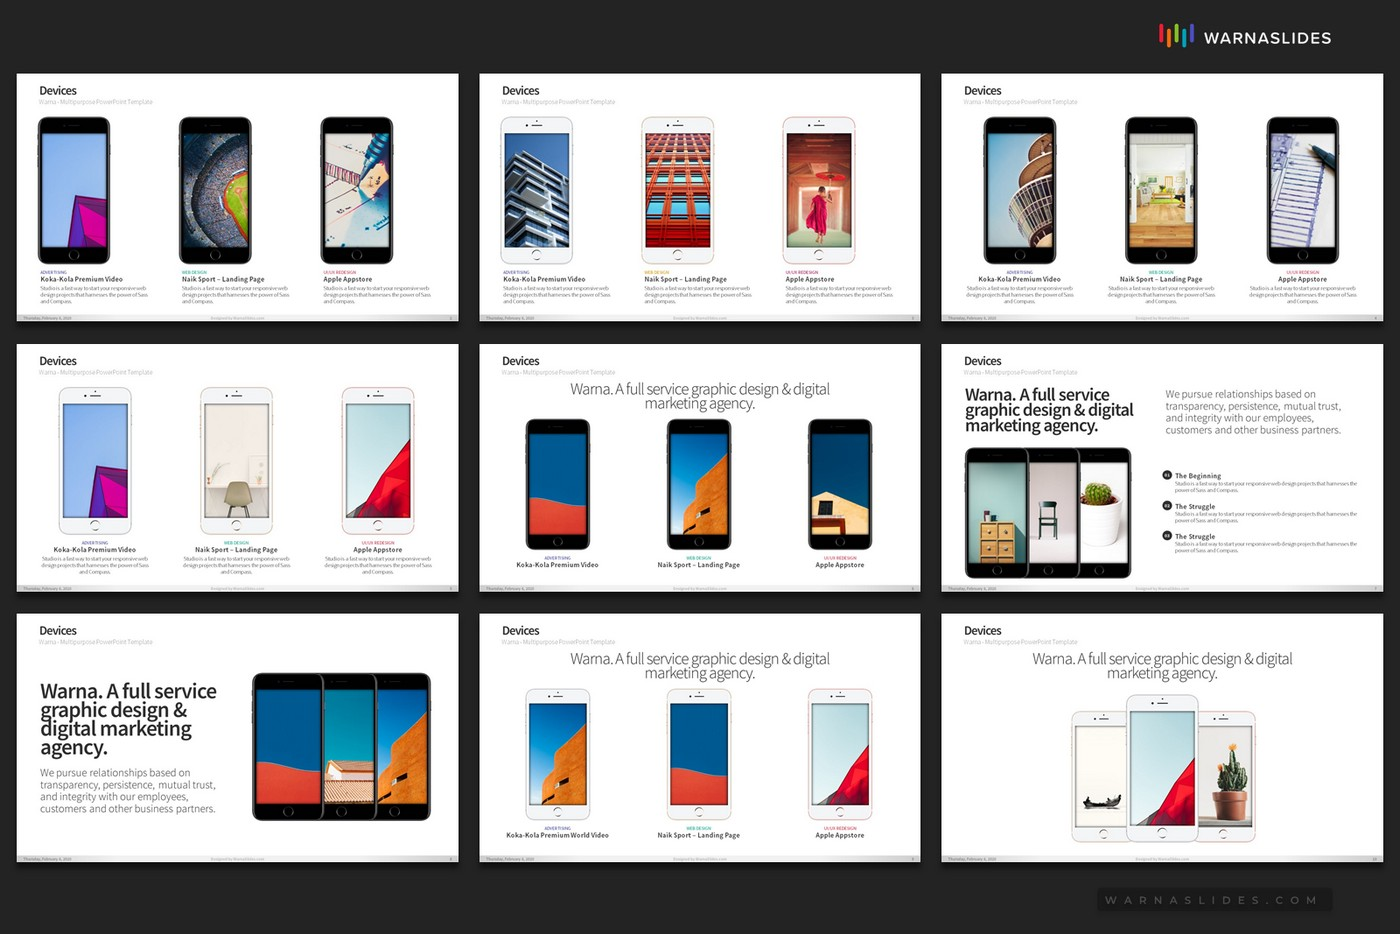 Devices-Smartphone-App-PowerPoint-Template-for-Business-Pitch-Deck-Professional-Creative-PowerPoint-Icons-006